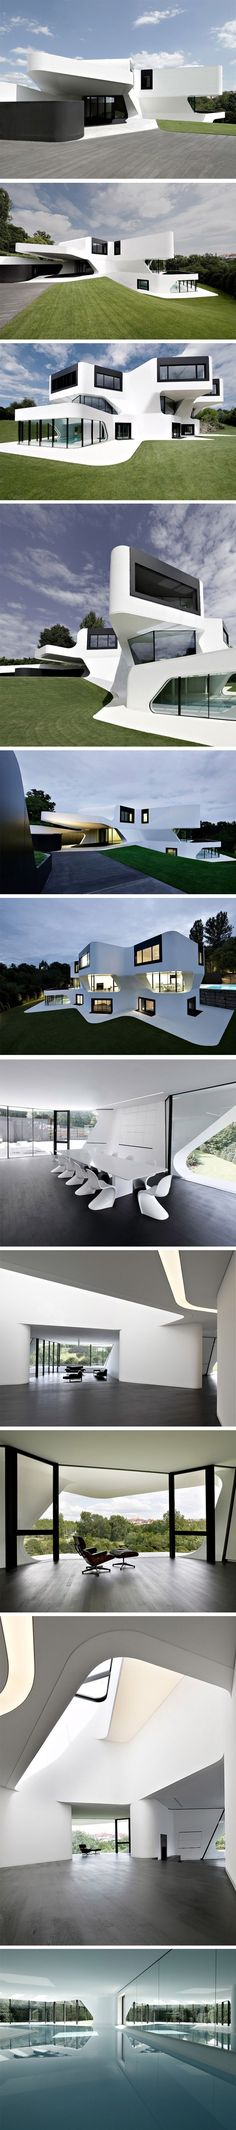 Dupli Casa par J.Mayer H. - Journal du Design